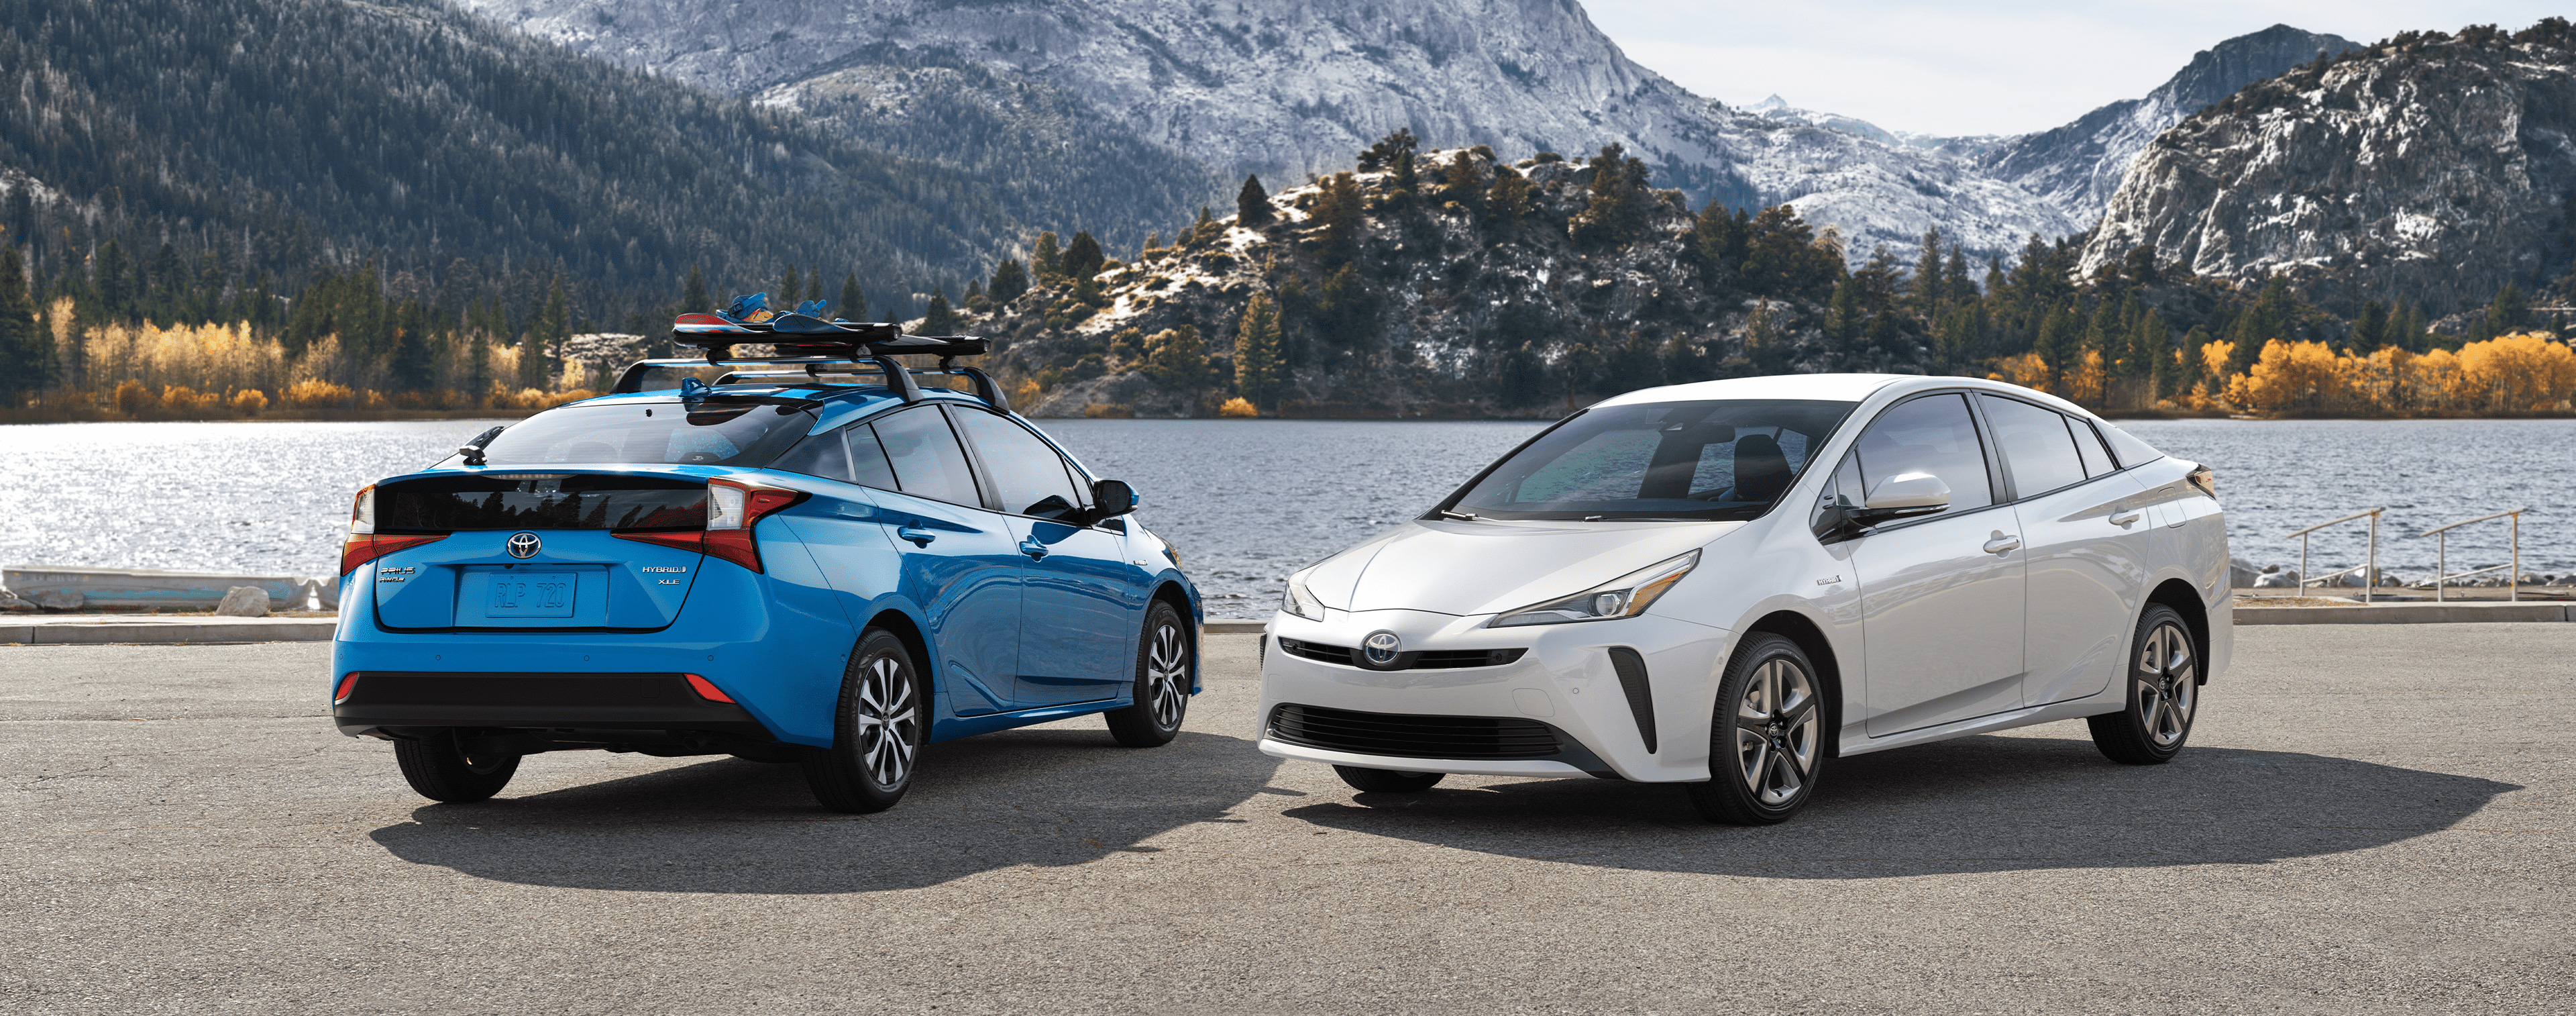 2020 Toyota Prius Appearance Main Img